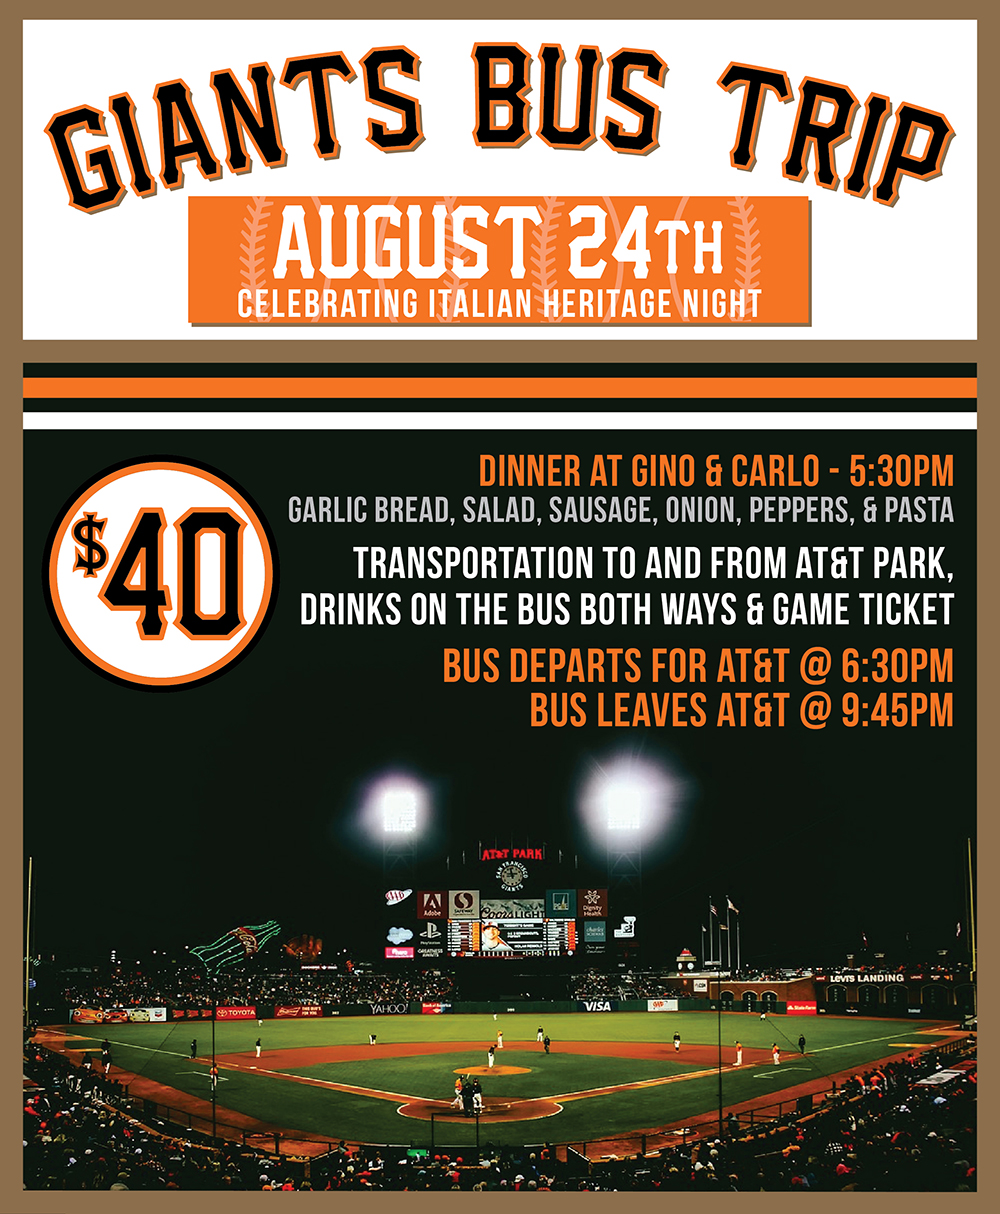 Join us on August 24th for food, drinks, and giants baseball! Stop by the bar to grab your tickets.